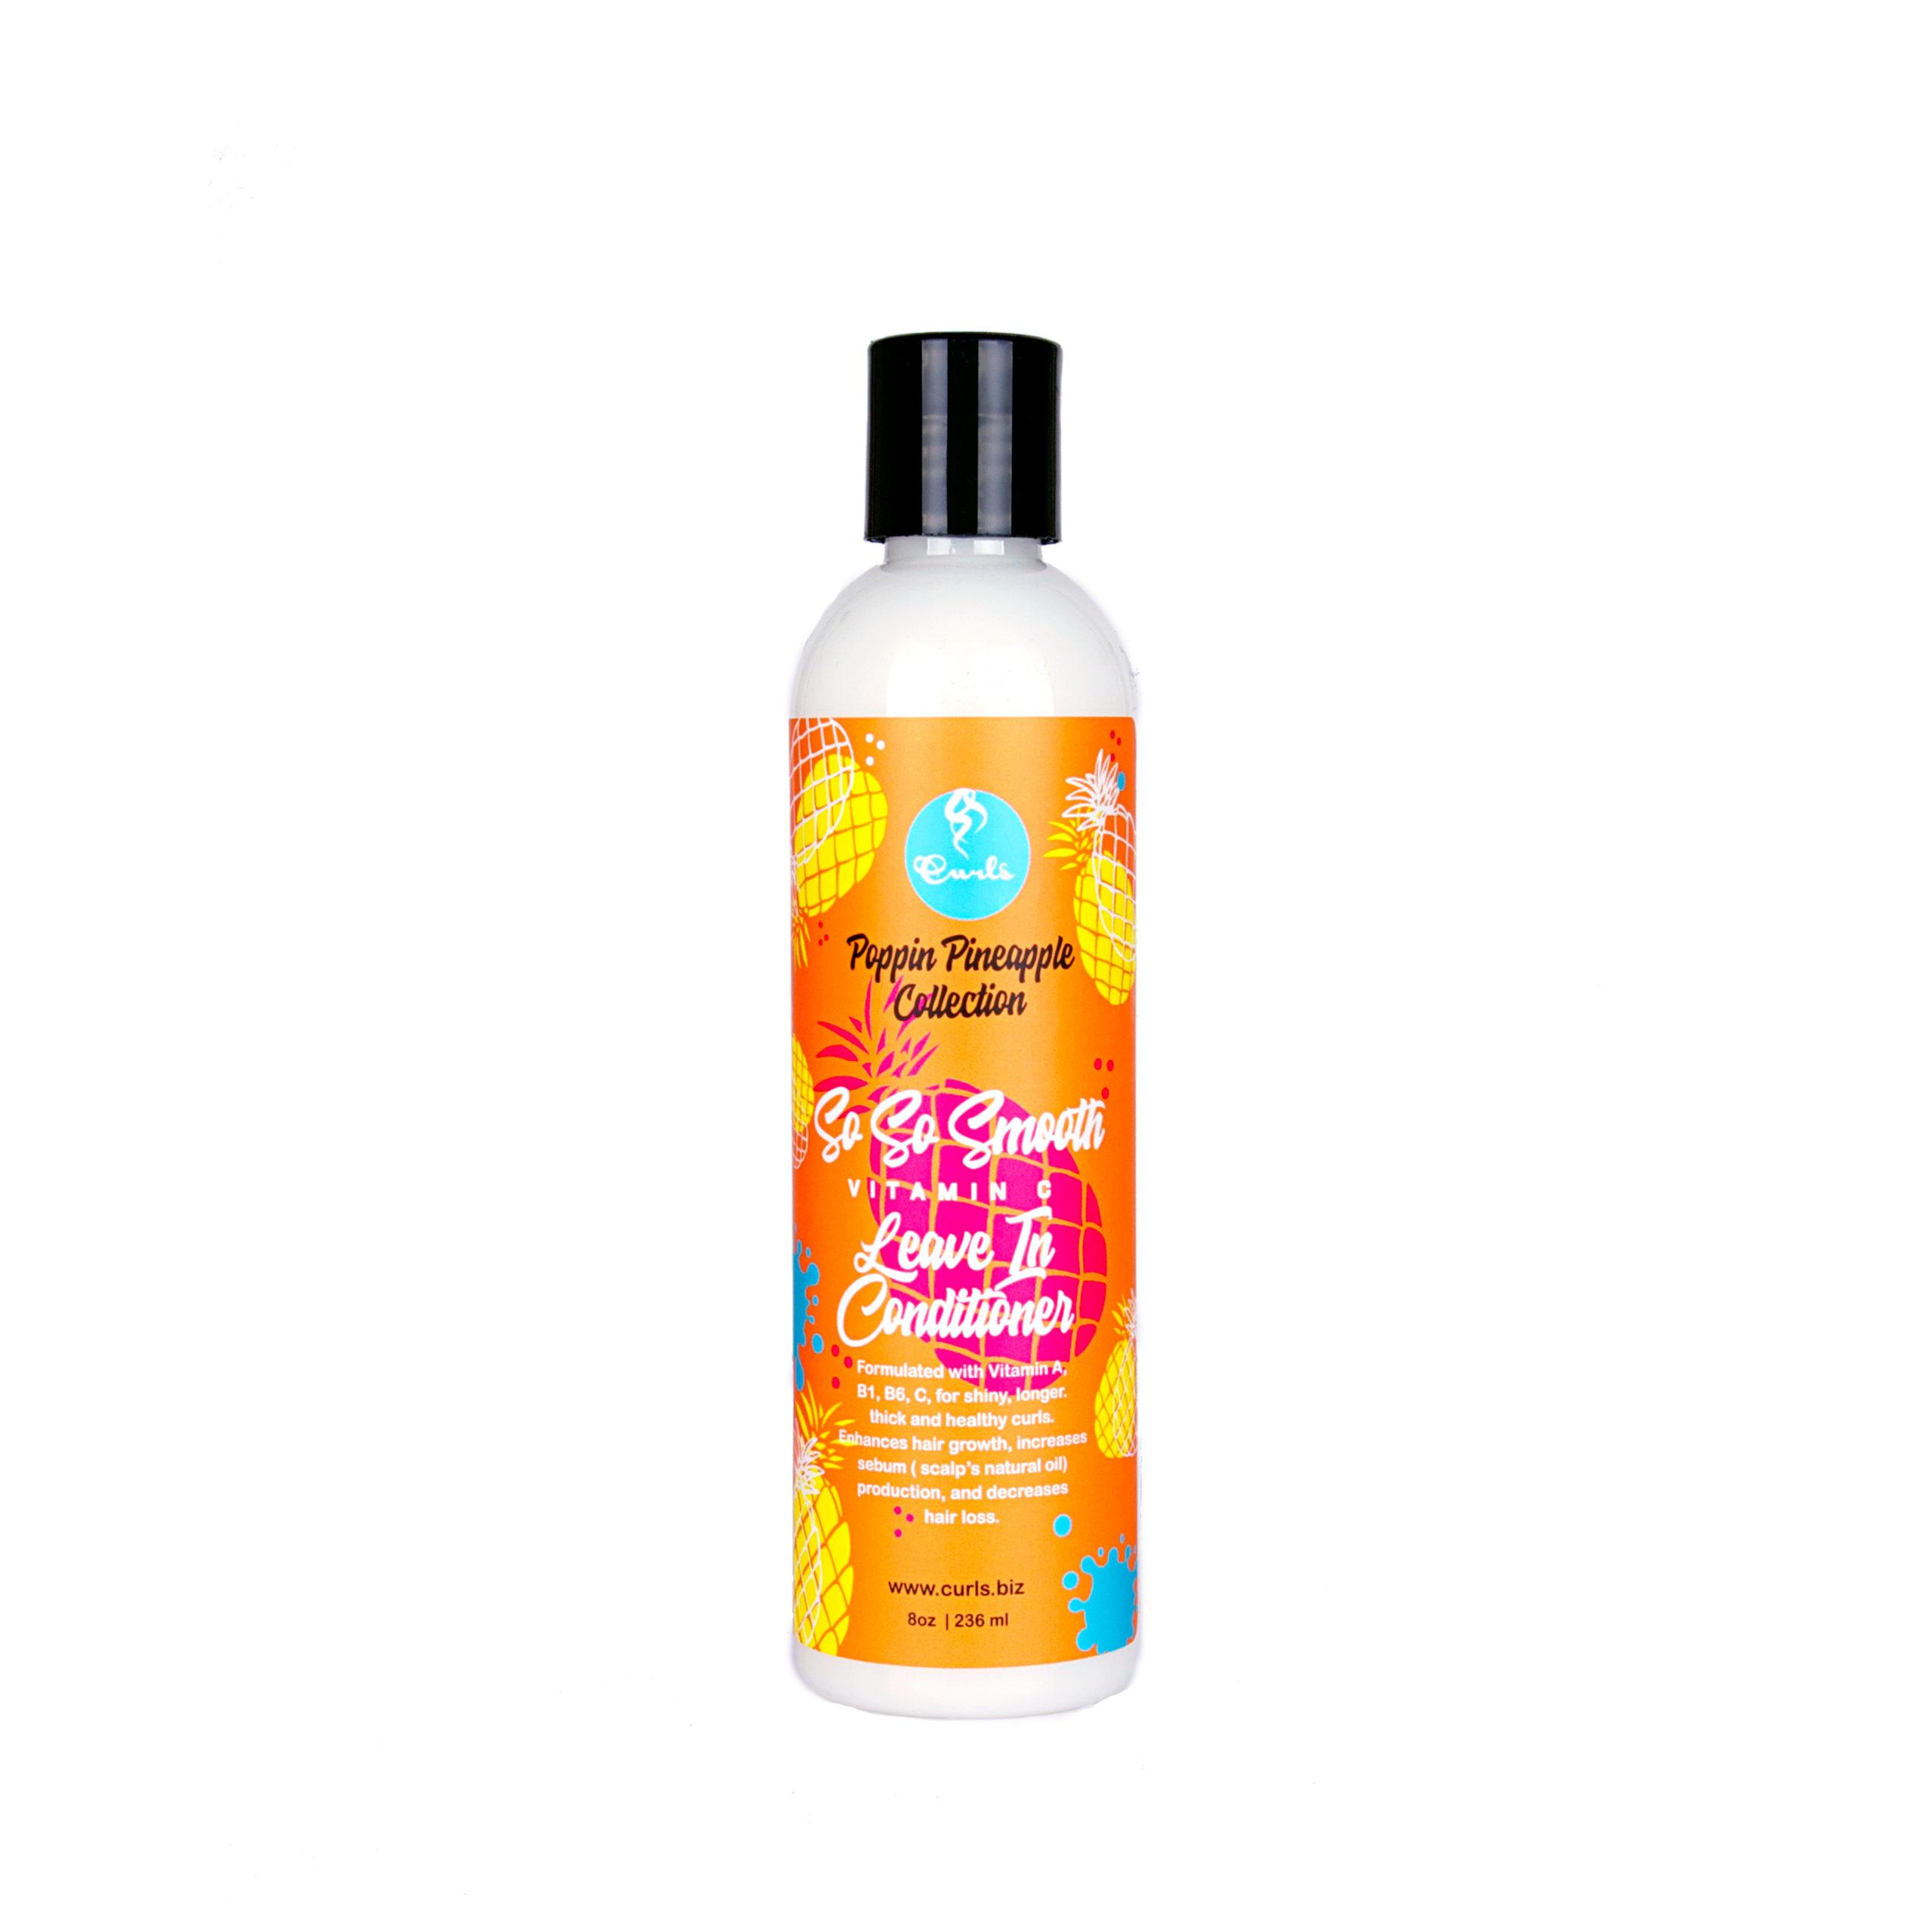 CURLS-Poppin-Pineapple-Leave-In-Conditioner-scaled